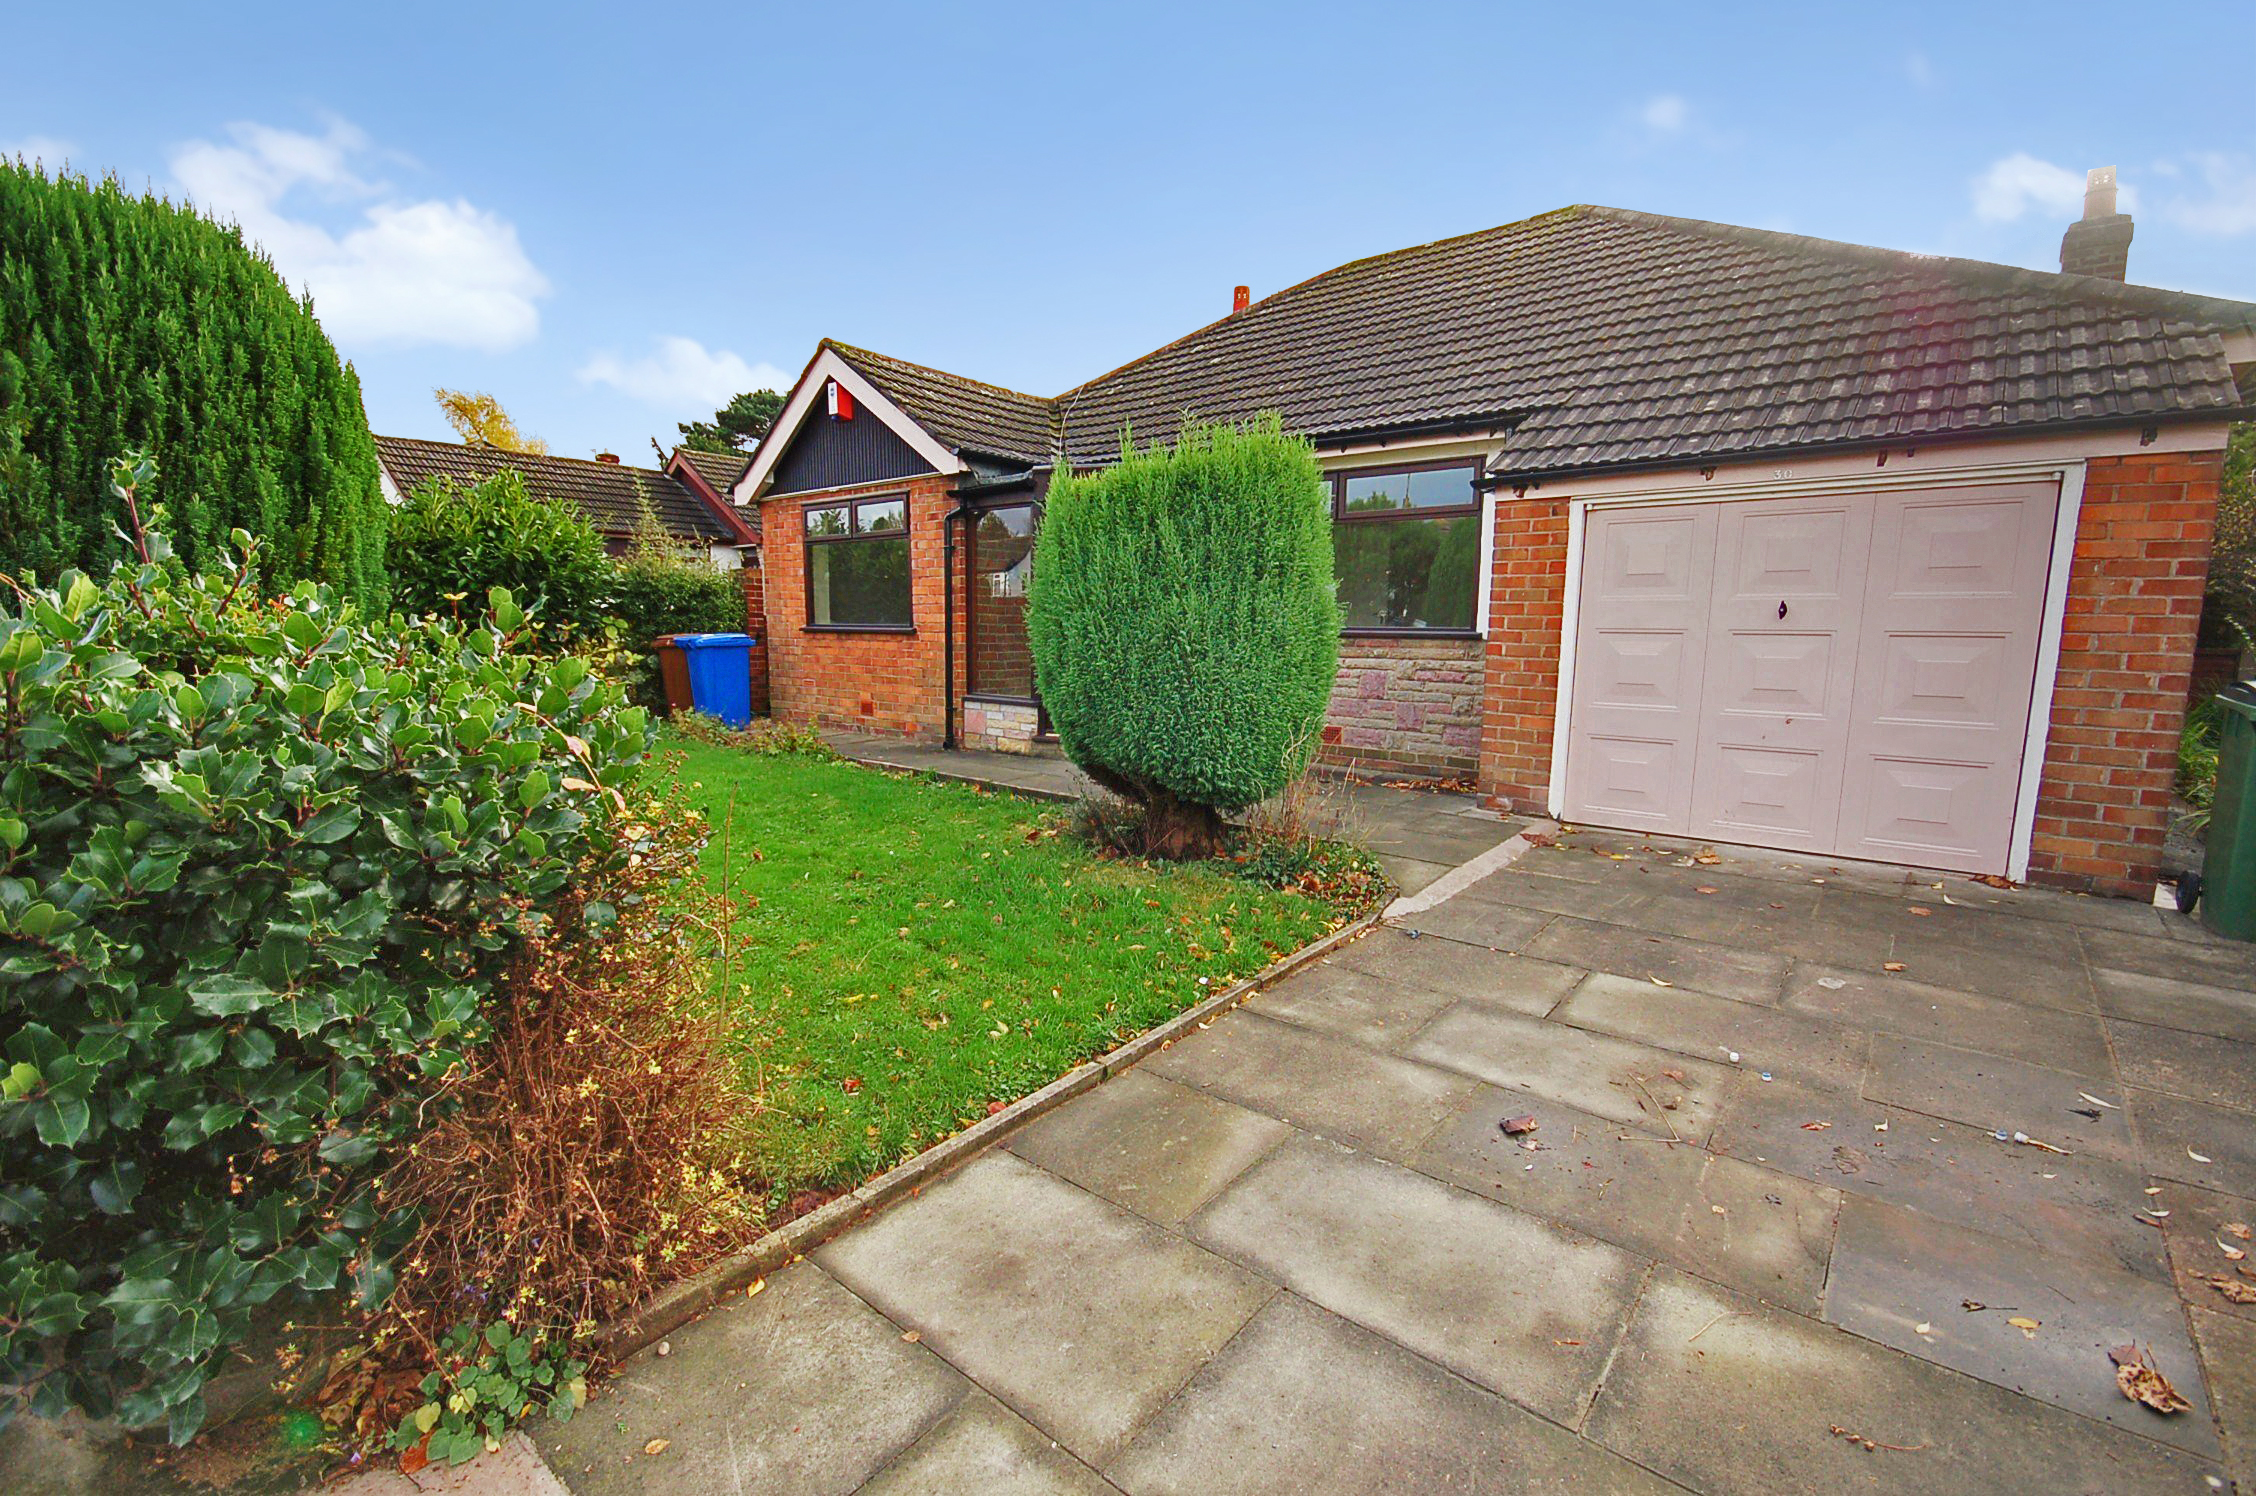 Thornway | £850 2 Bed - 2 double bedroom unfurnished detached bungalow, set in the beautiful village of High Lane